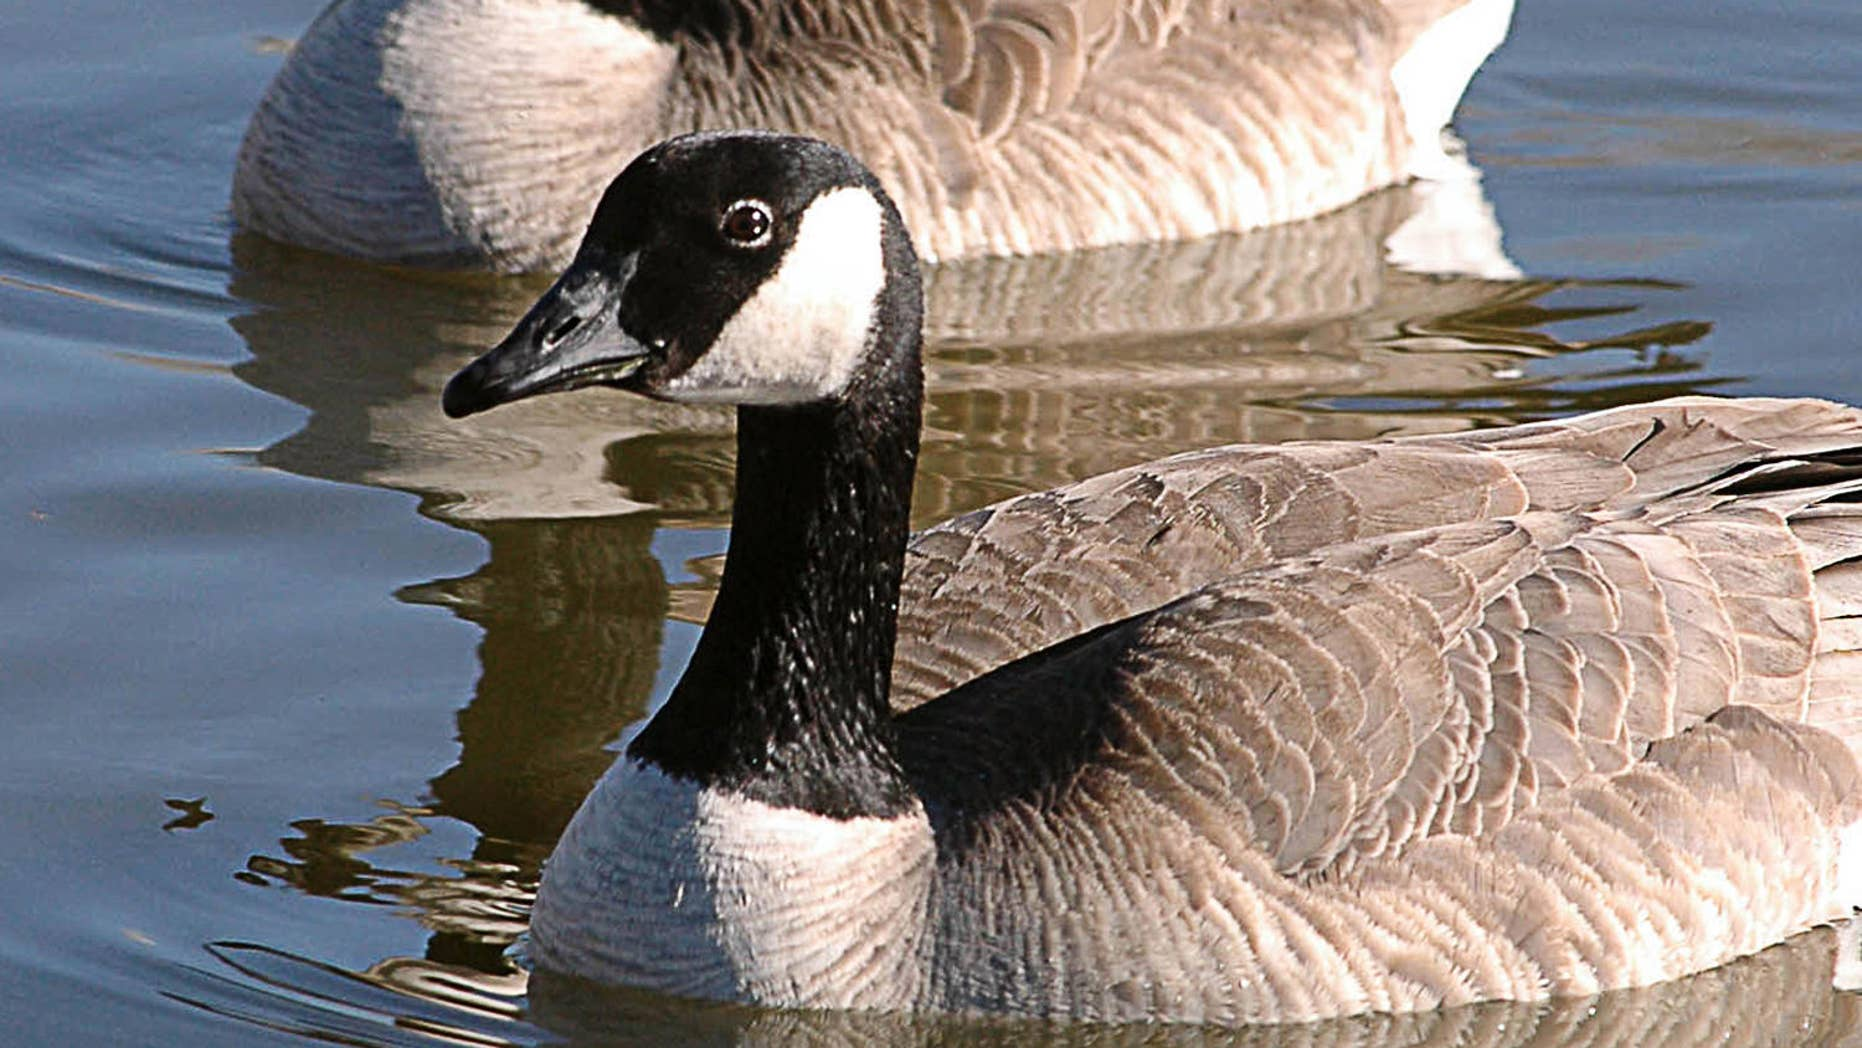 Two Canada geese soak up the sun on Capitol Lake Thursday, Feb. 3, 2005 near the State Capitol in Pierre, S.D. Warm temperatures throughout the area had people and animals alike basking in the sun and enjoying the warm winter day. (AP Photo/Doug Dreyer)STAND ALONE